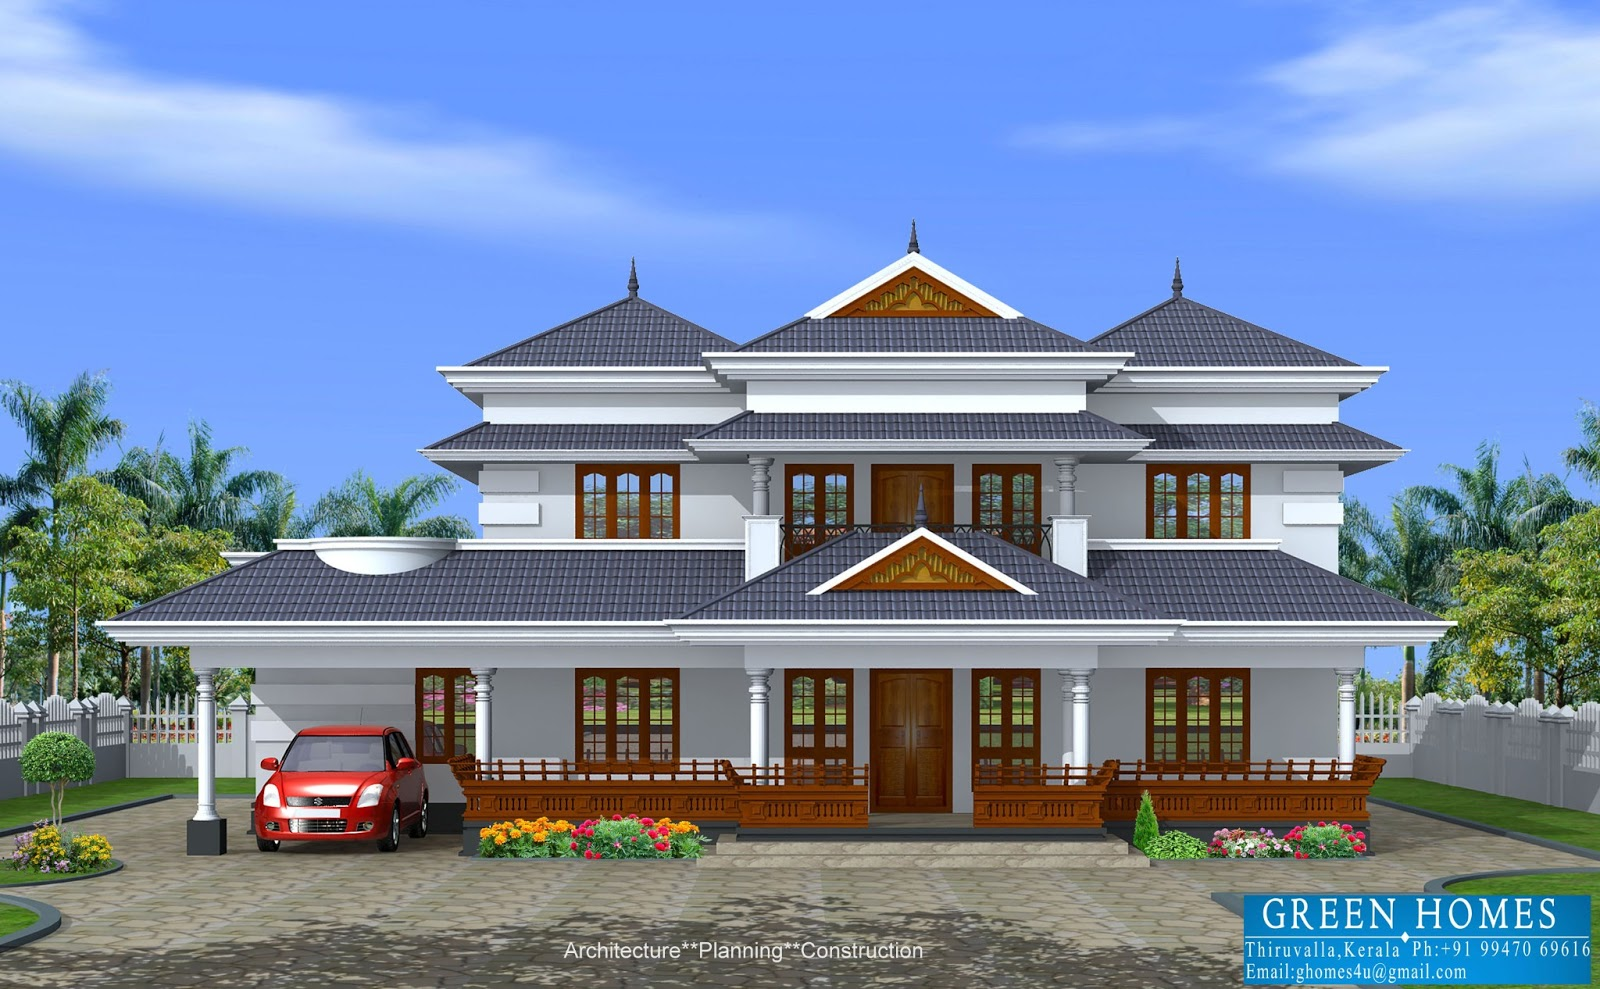 green homes traditional style kerala home in 3450 sq ft